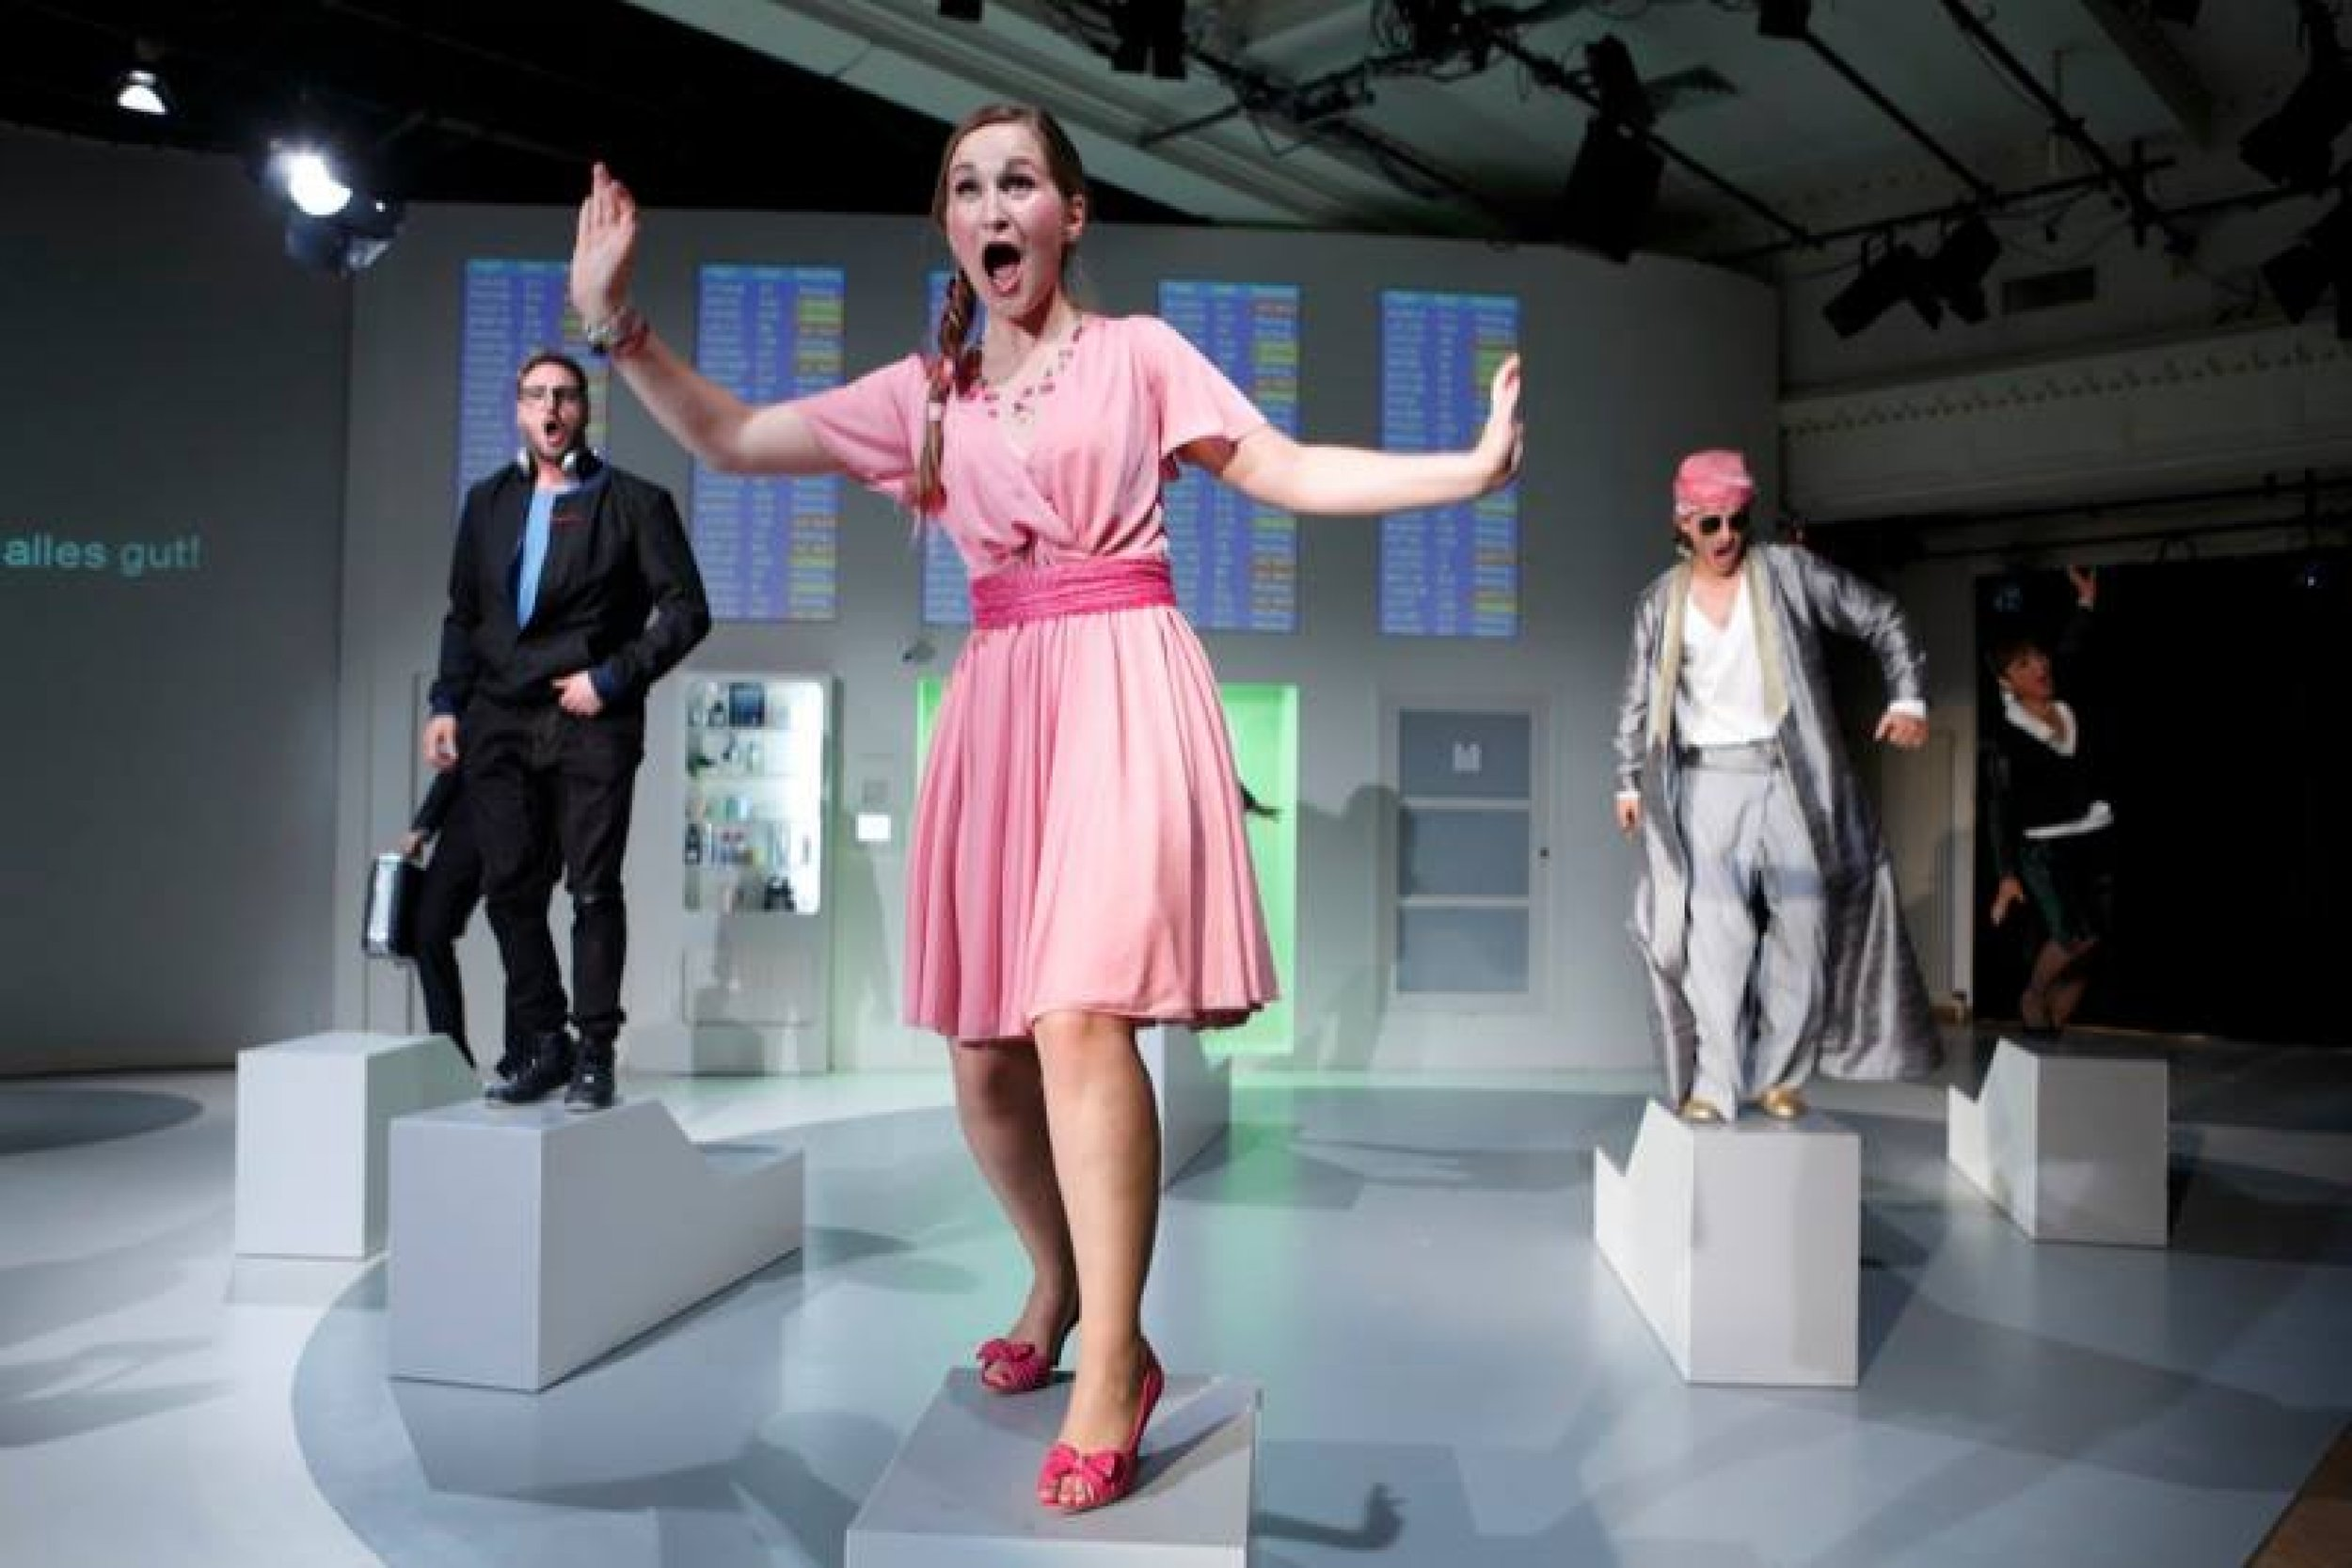 Review as London Sheraton in AIRRossini at the Neuköllner Oper Berlin (2013) - Eine temperamentvolle, urkomische London Sheraton spielte Polly Ott. (Polly Ott plays a bubbly and hilarious London Sheraton). Ingrid Wanja, Der Opernfreund